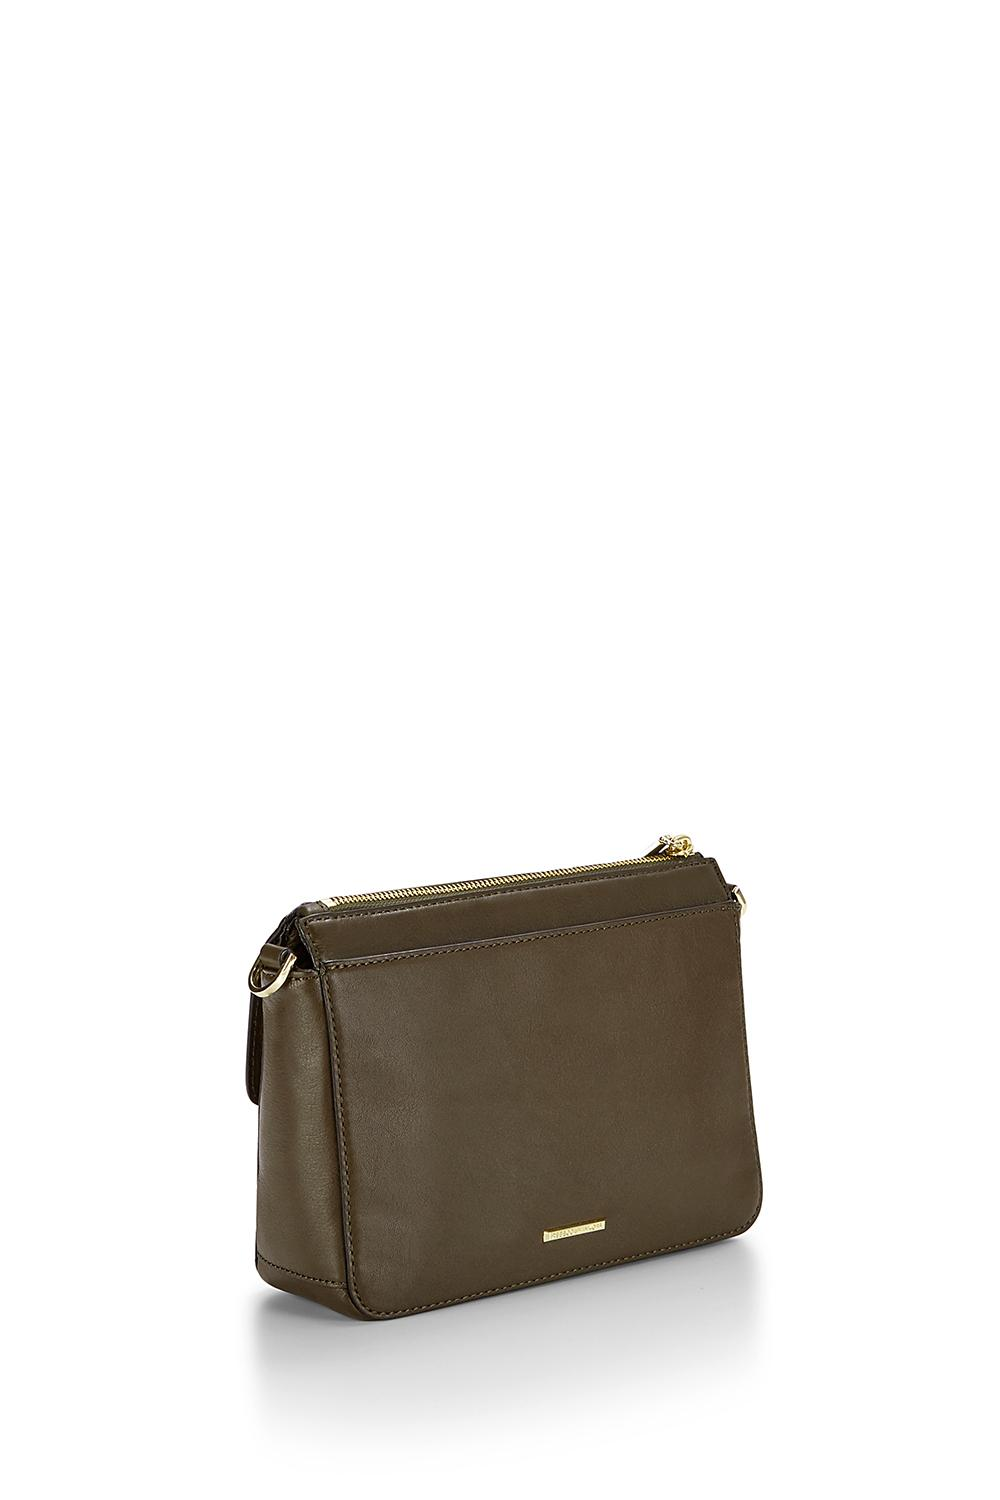 ba76ca546 Lyst - Rebecca Minkoff Laurie Crossbody in Green